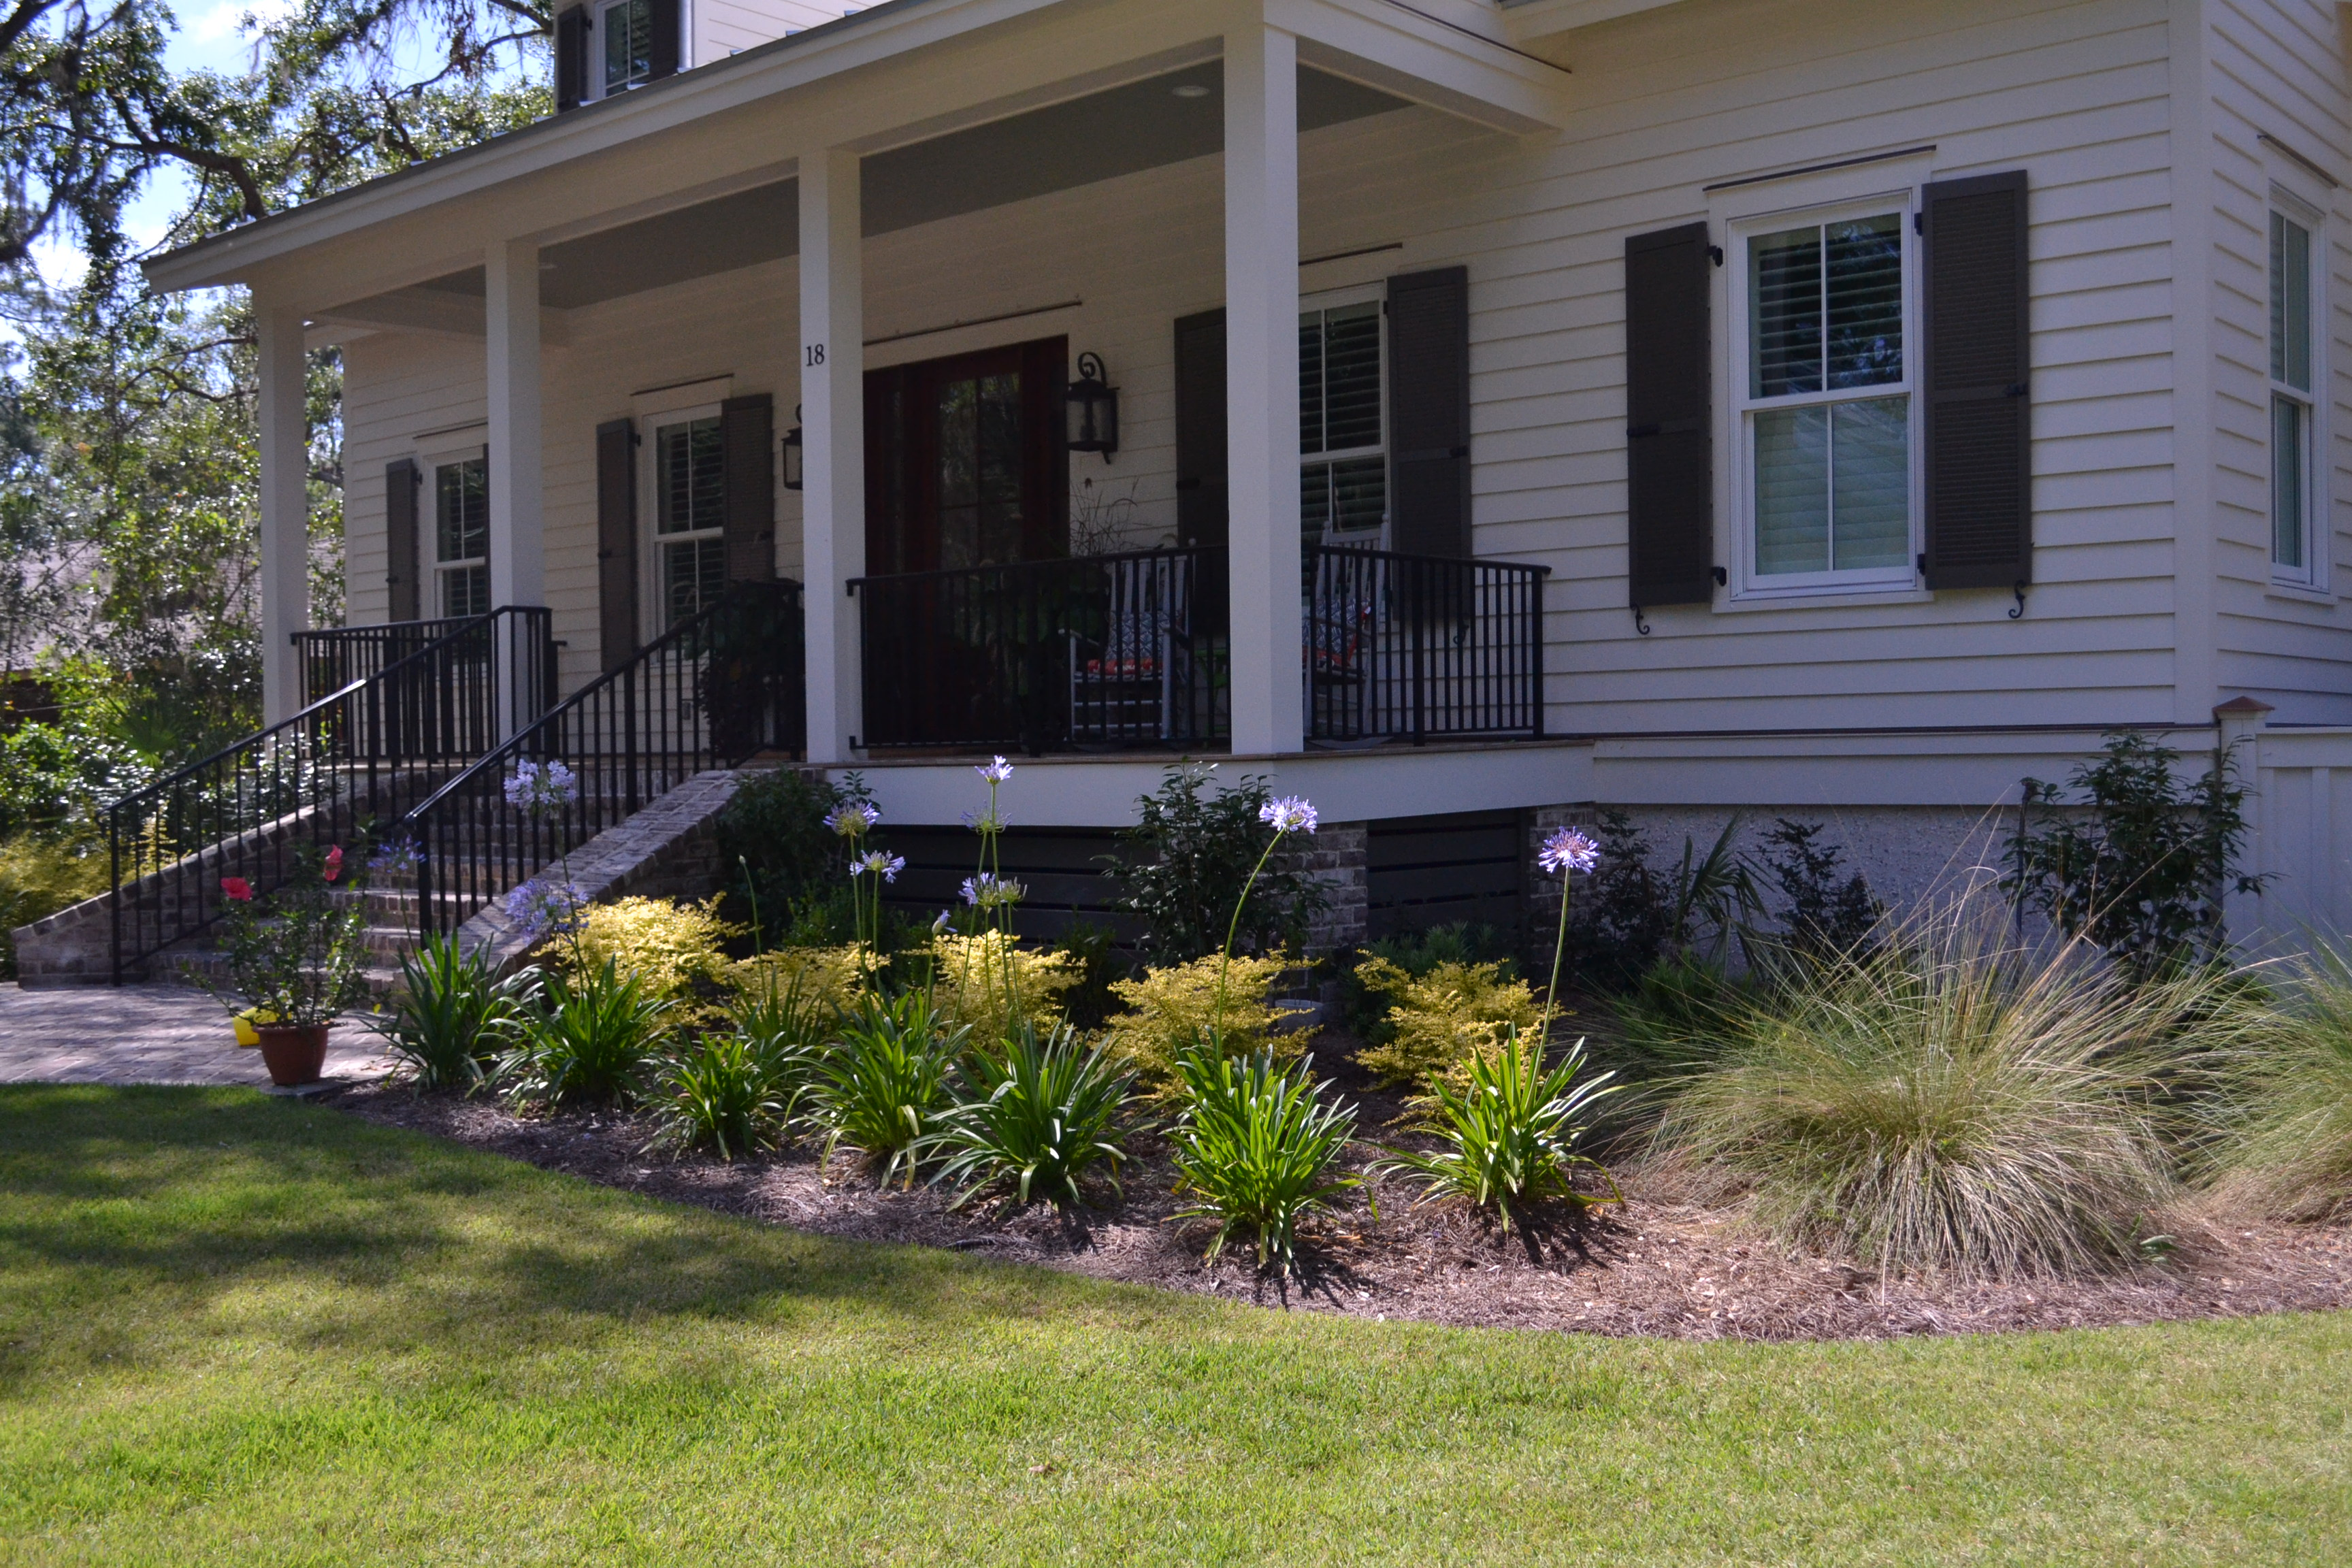 Does Landscaping Work Increase Property Value? 1